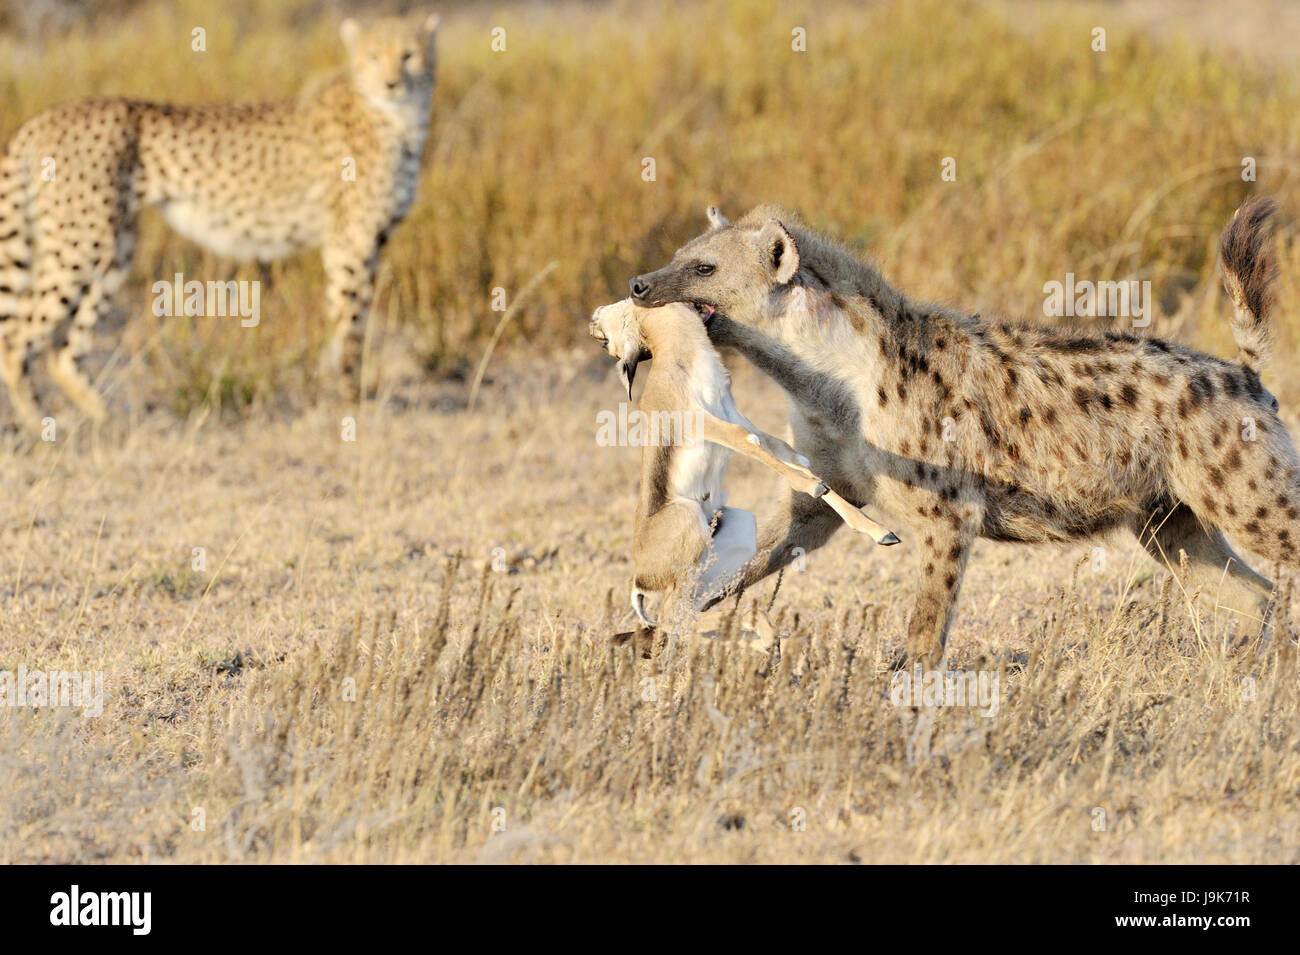 Spotted Hyena (Crocuta crocuta) con ucciso Thomson Gazelle, con ghepardo (Acinonyx jubatus) in background, Serengeti Immagini Stock